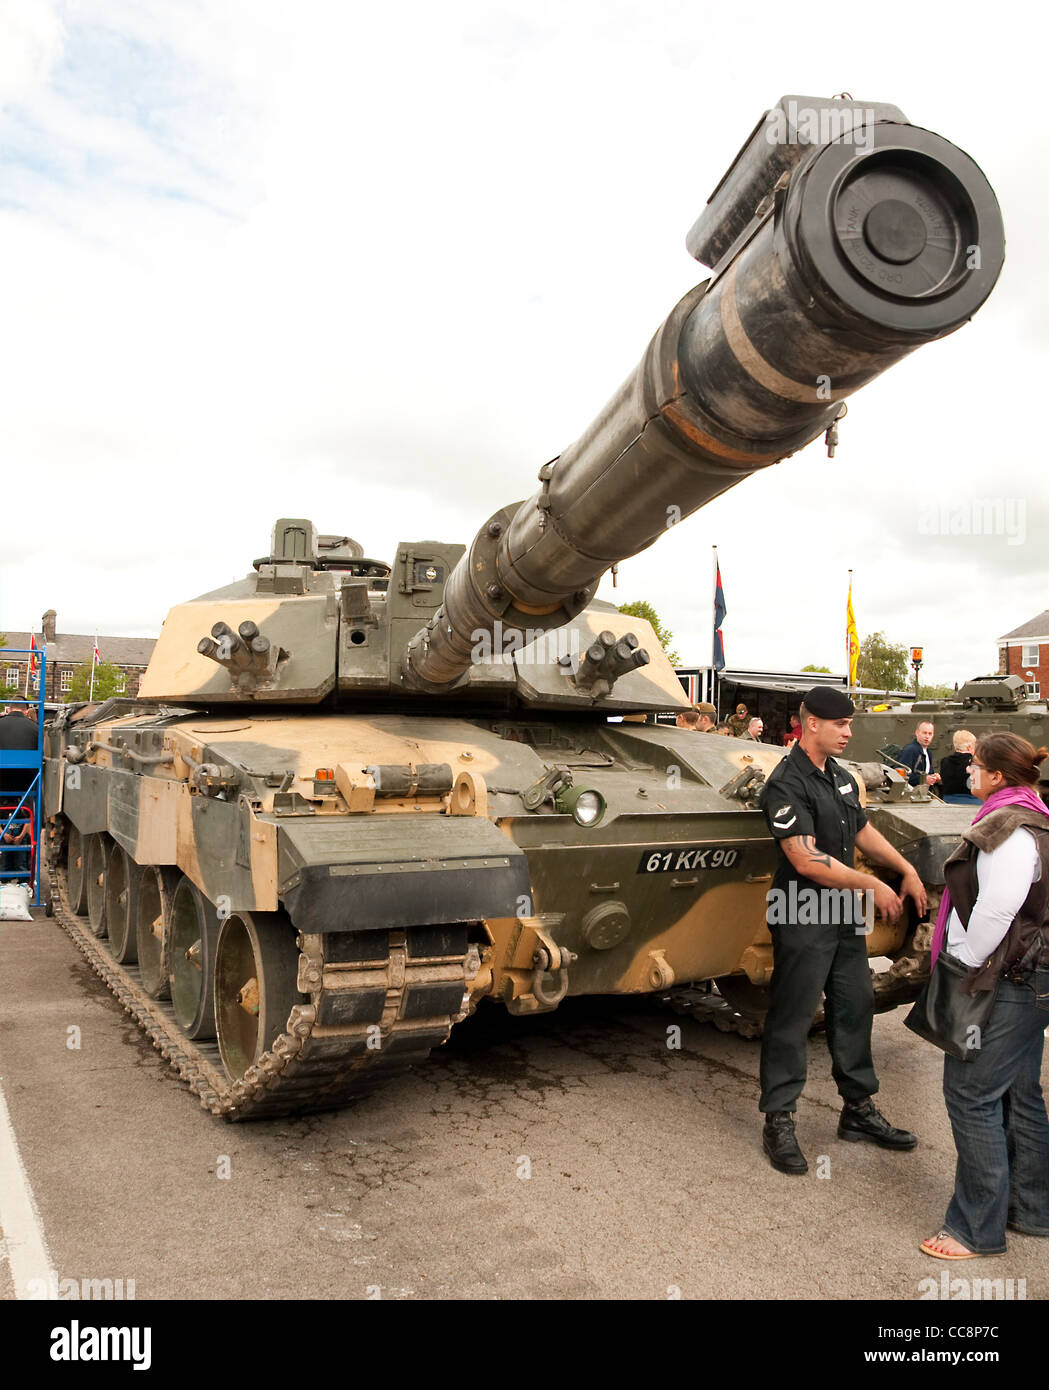 A British Army Challenger II main battle tank on display at a public open day at Fulwood Barracks, Preston, Lancashire - Stock Image